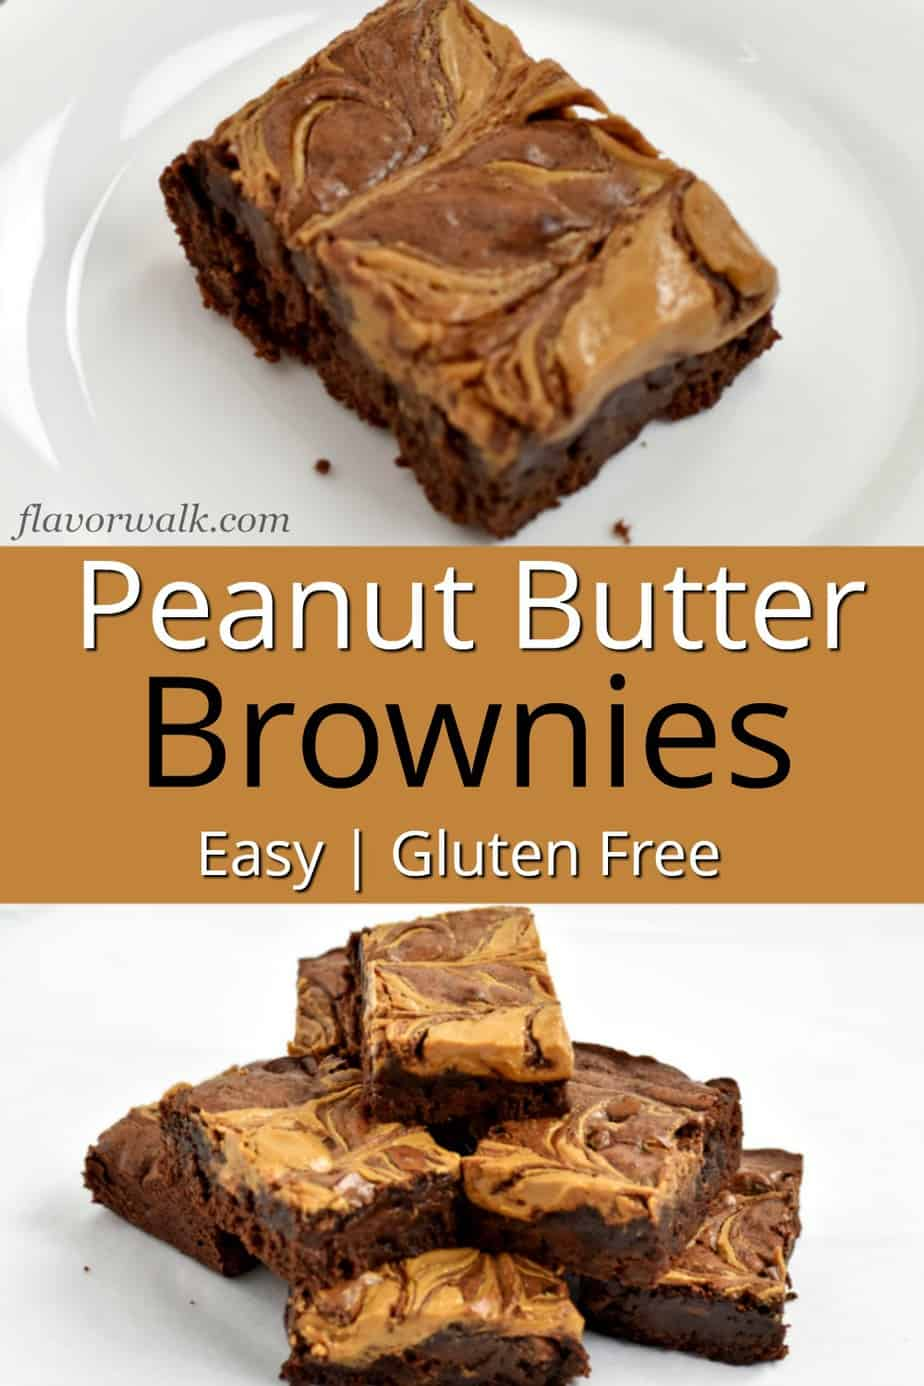 Top image is 1 gluten free peanut butter brownie on white plate, middle image is gold text overlay, bottom image is stack of gluten free peanut butter brownies.